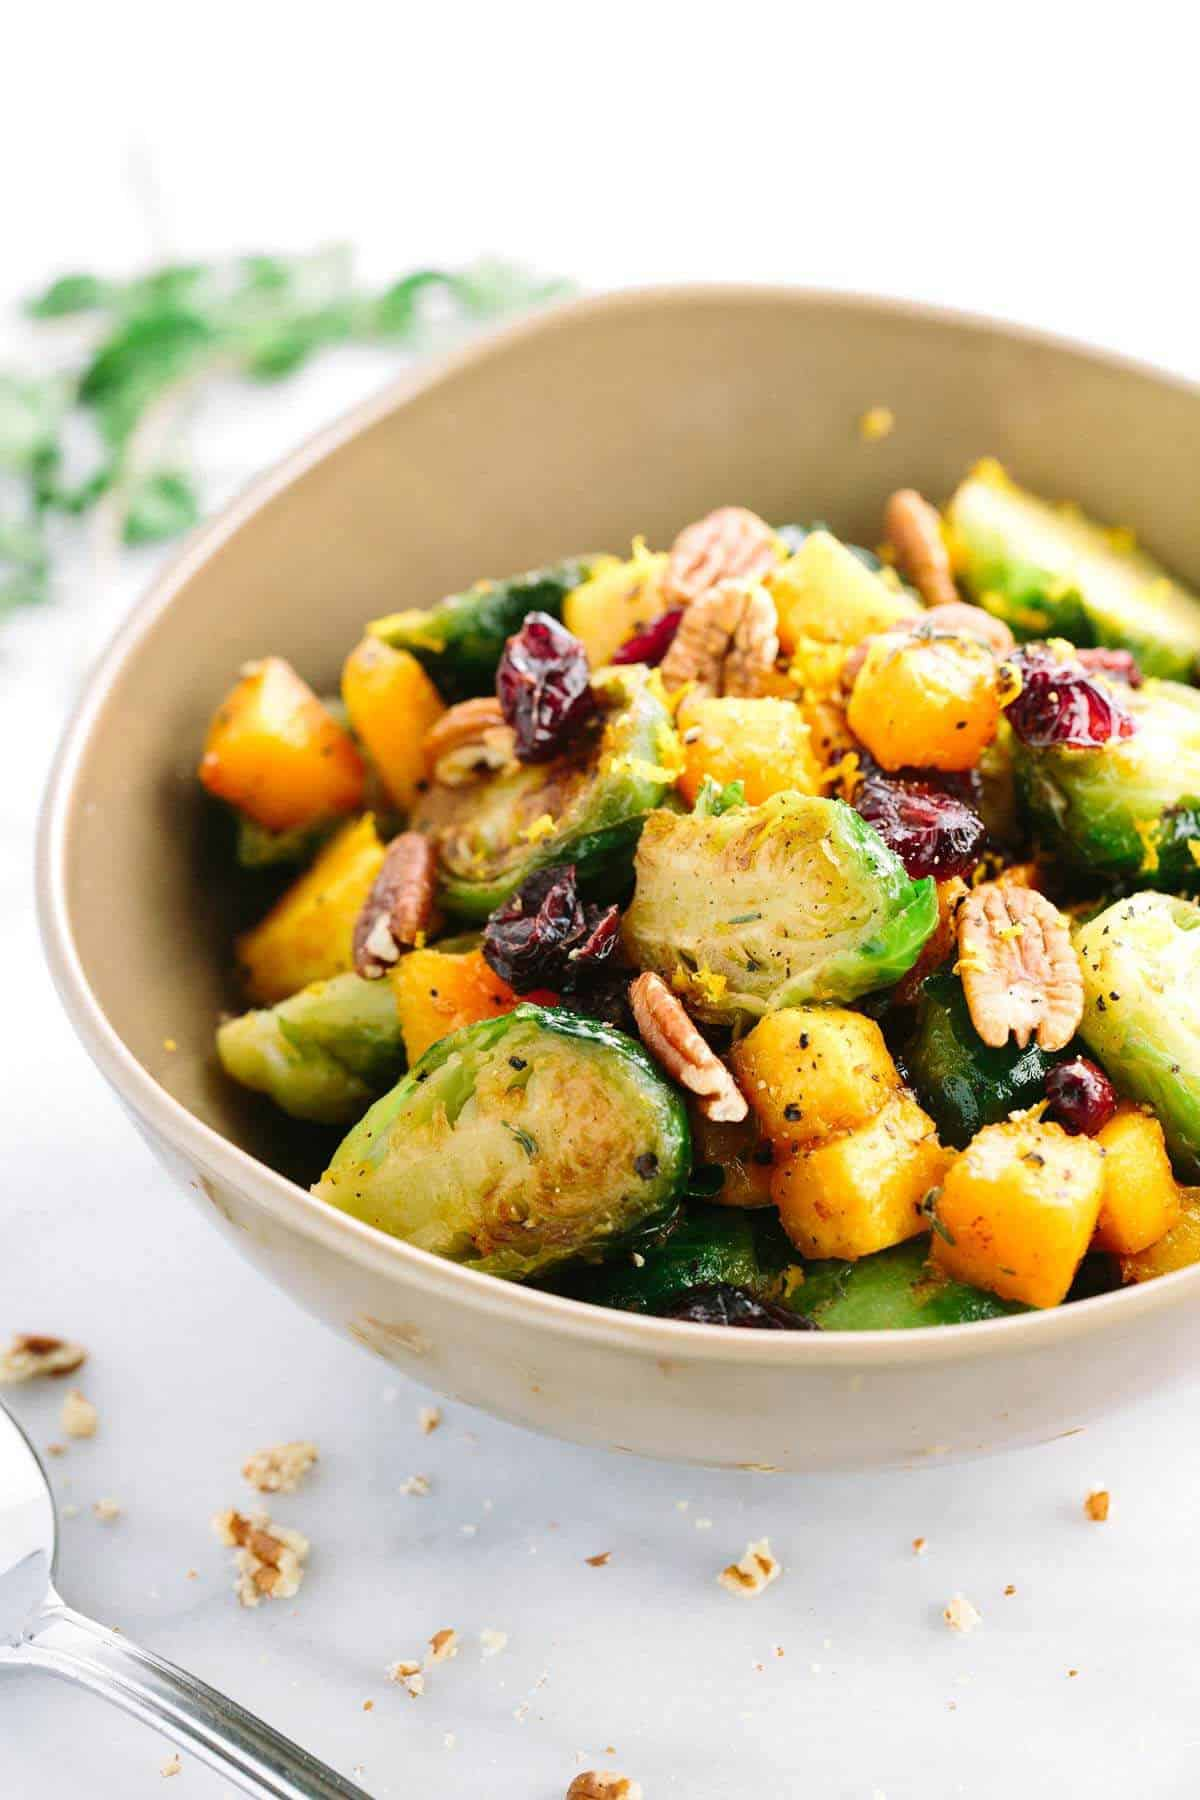 Orange glazed brussels sprouts + 15 Farmers market recipes to try this November! Delicious, autumn recipes made with fresh, seasonal produce from your local farmers market or CSA bin. Eat local!